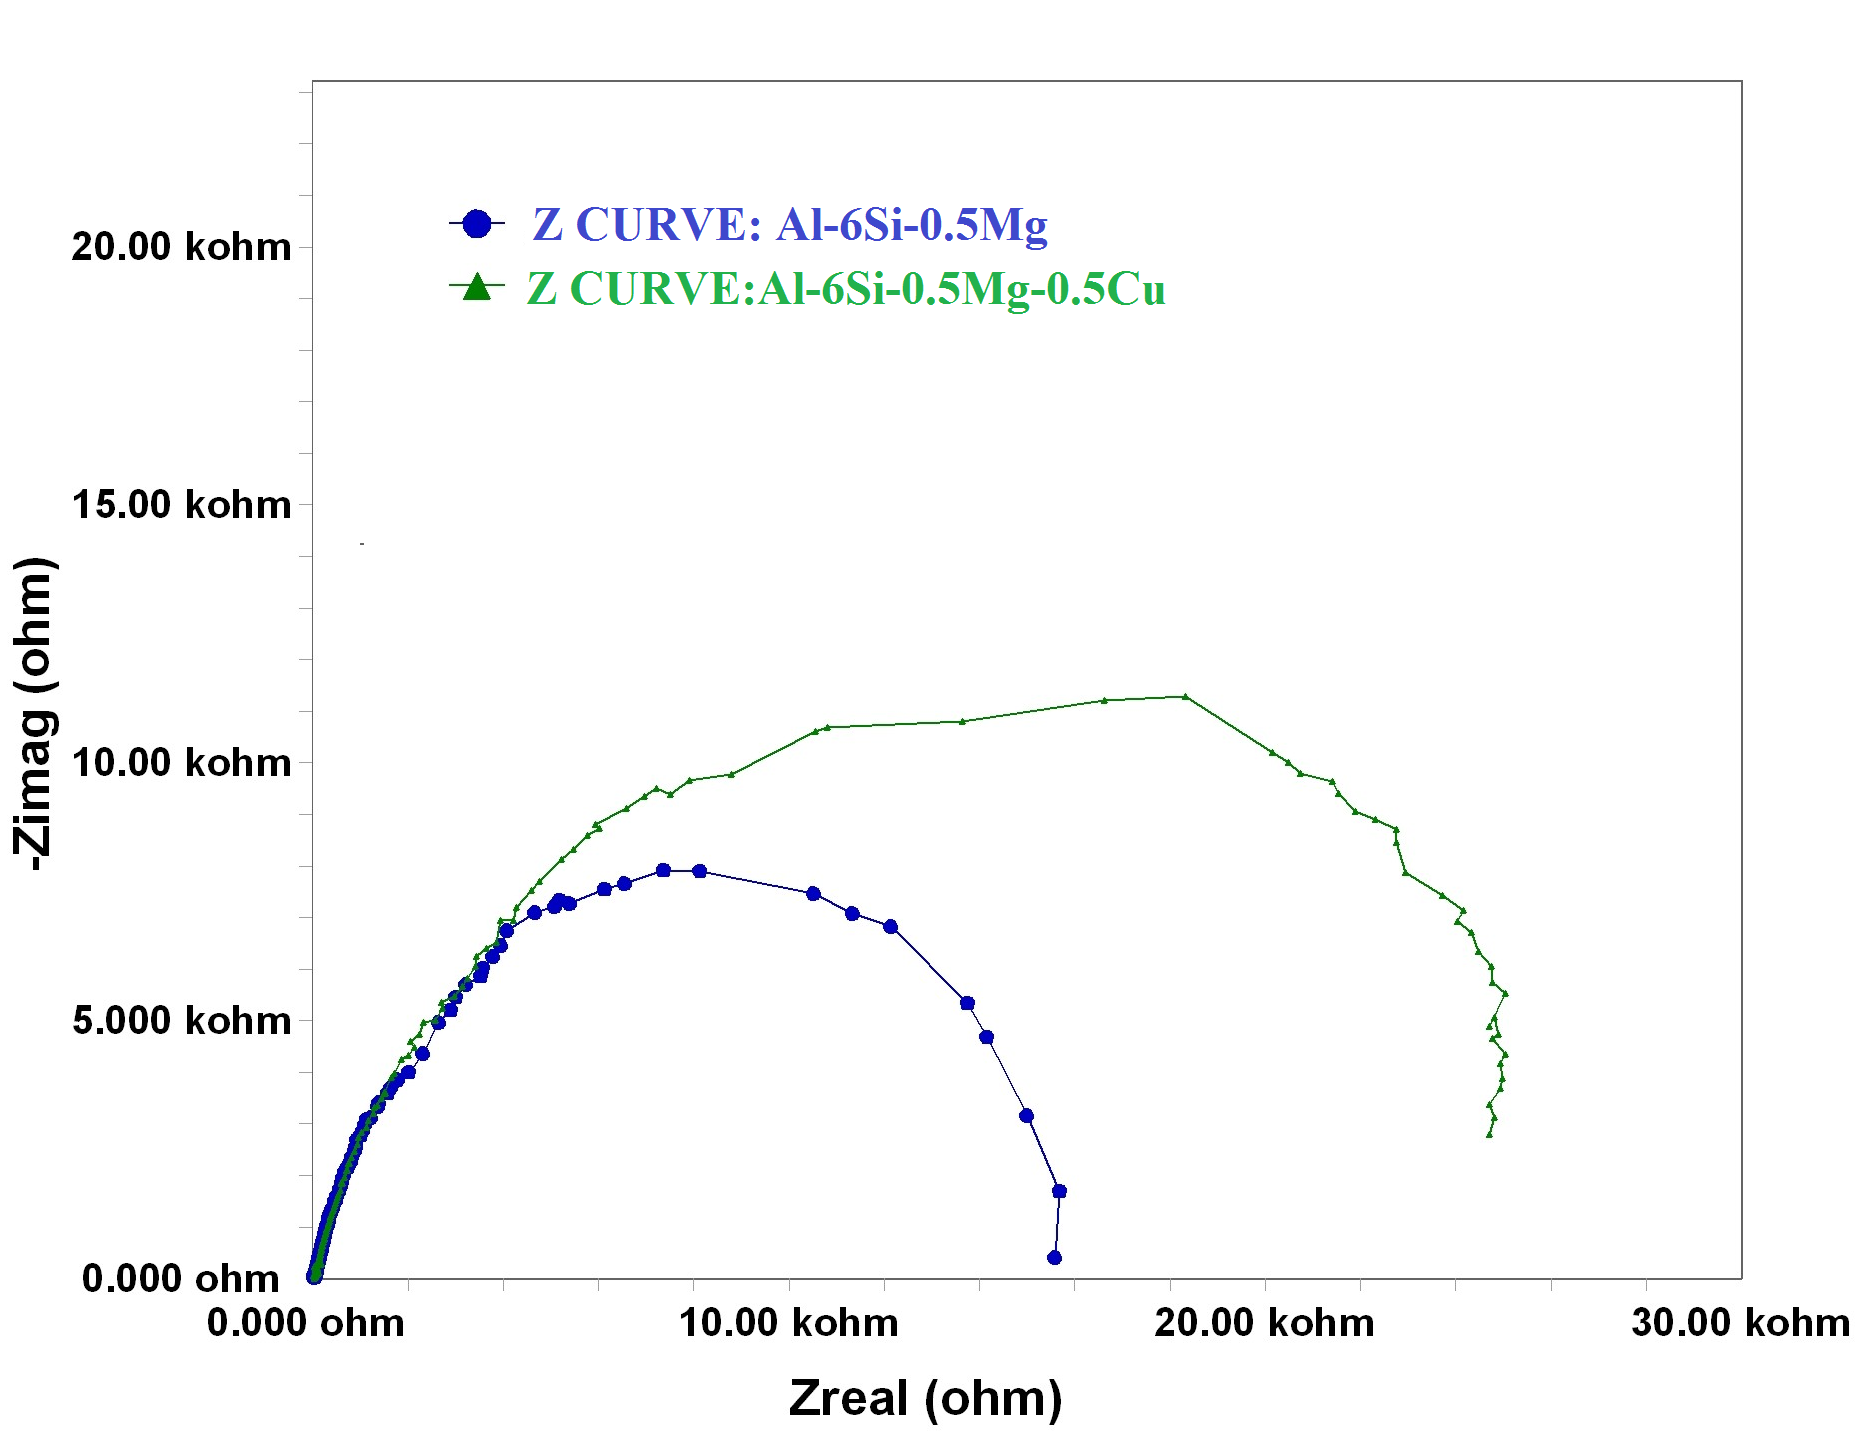 Fig. 2: Nyquist plots for the peakaged Al-6Si-0.5Mg(-0.5Cu) alloys in simulated seawater